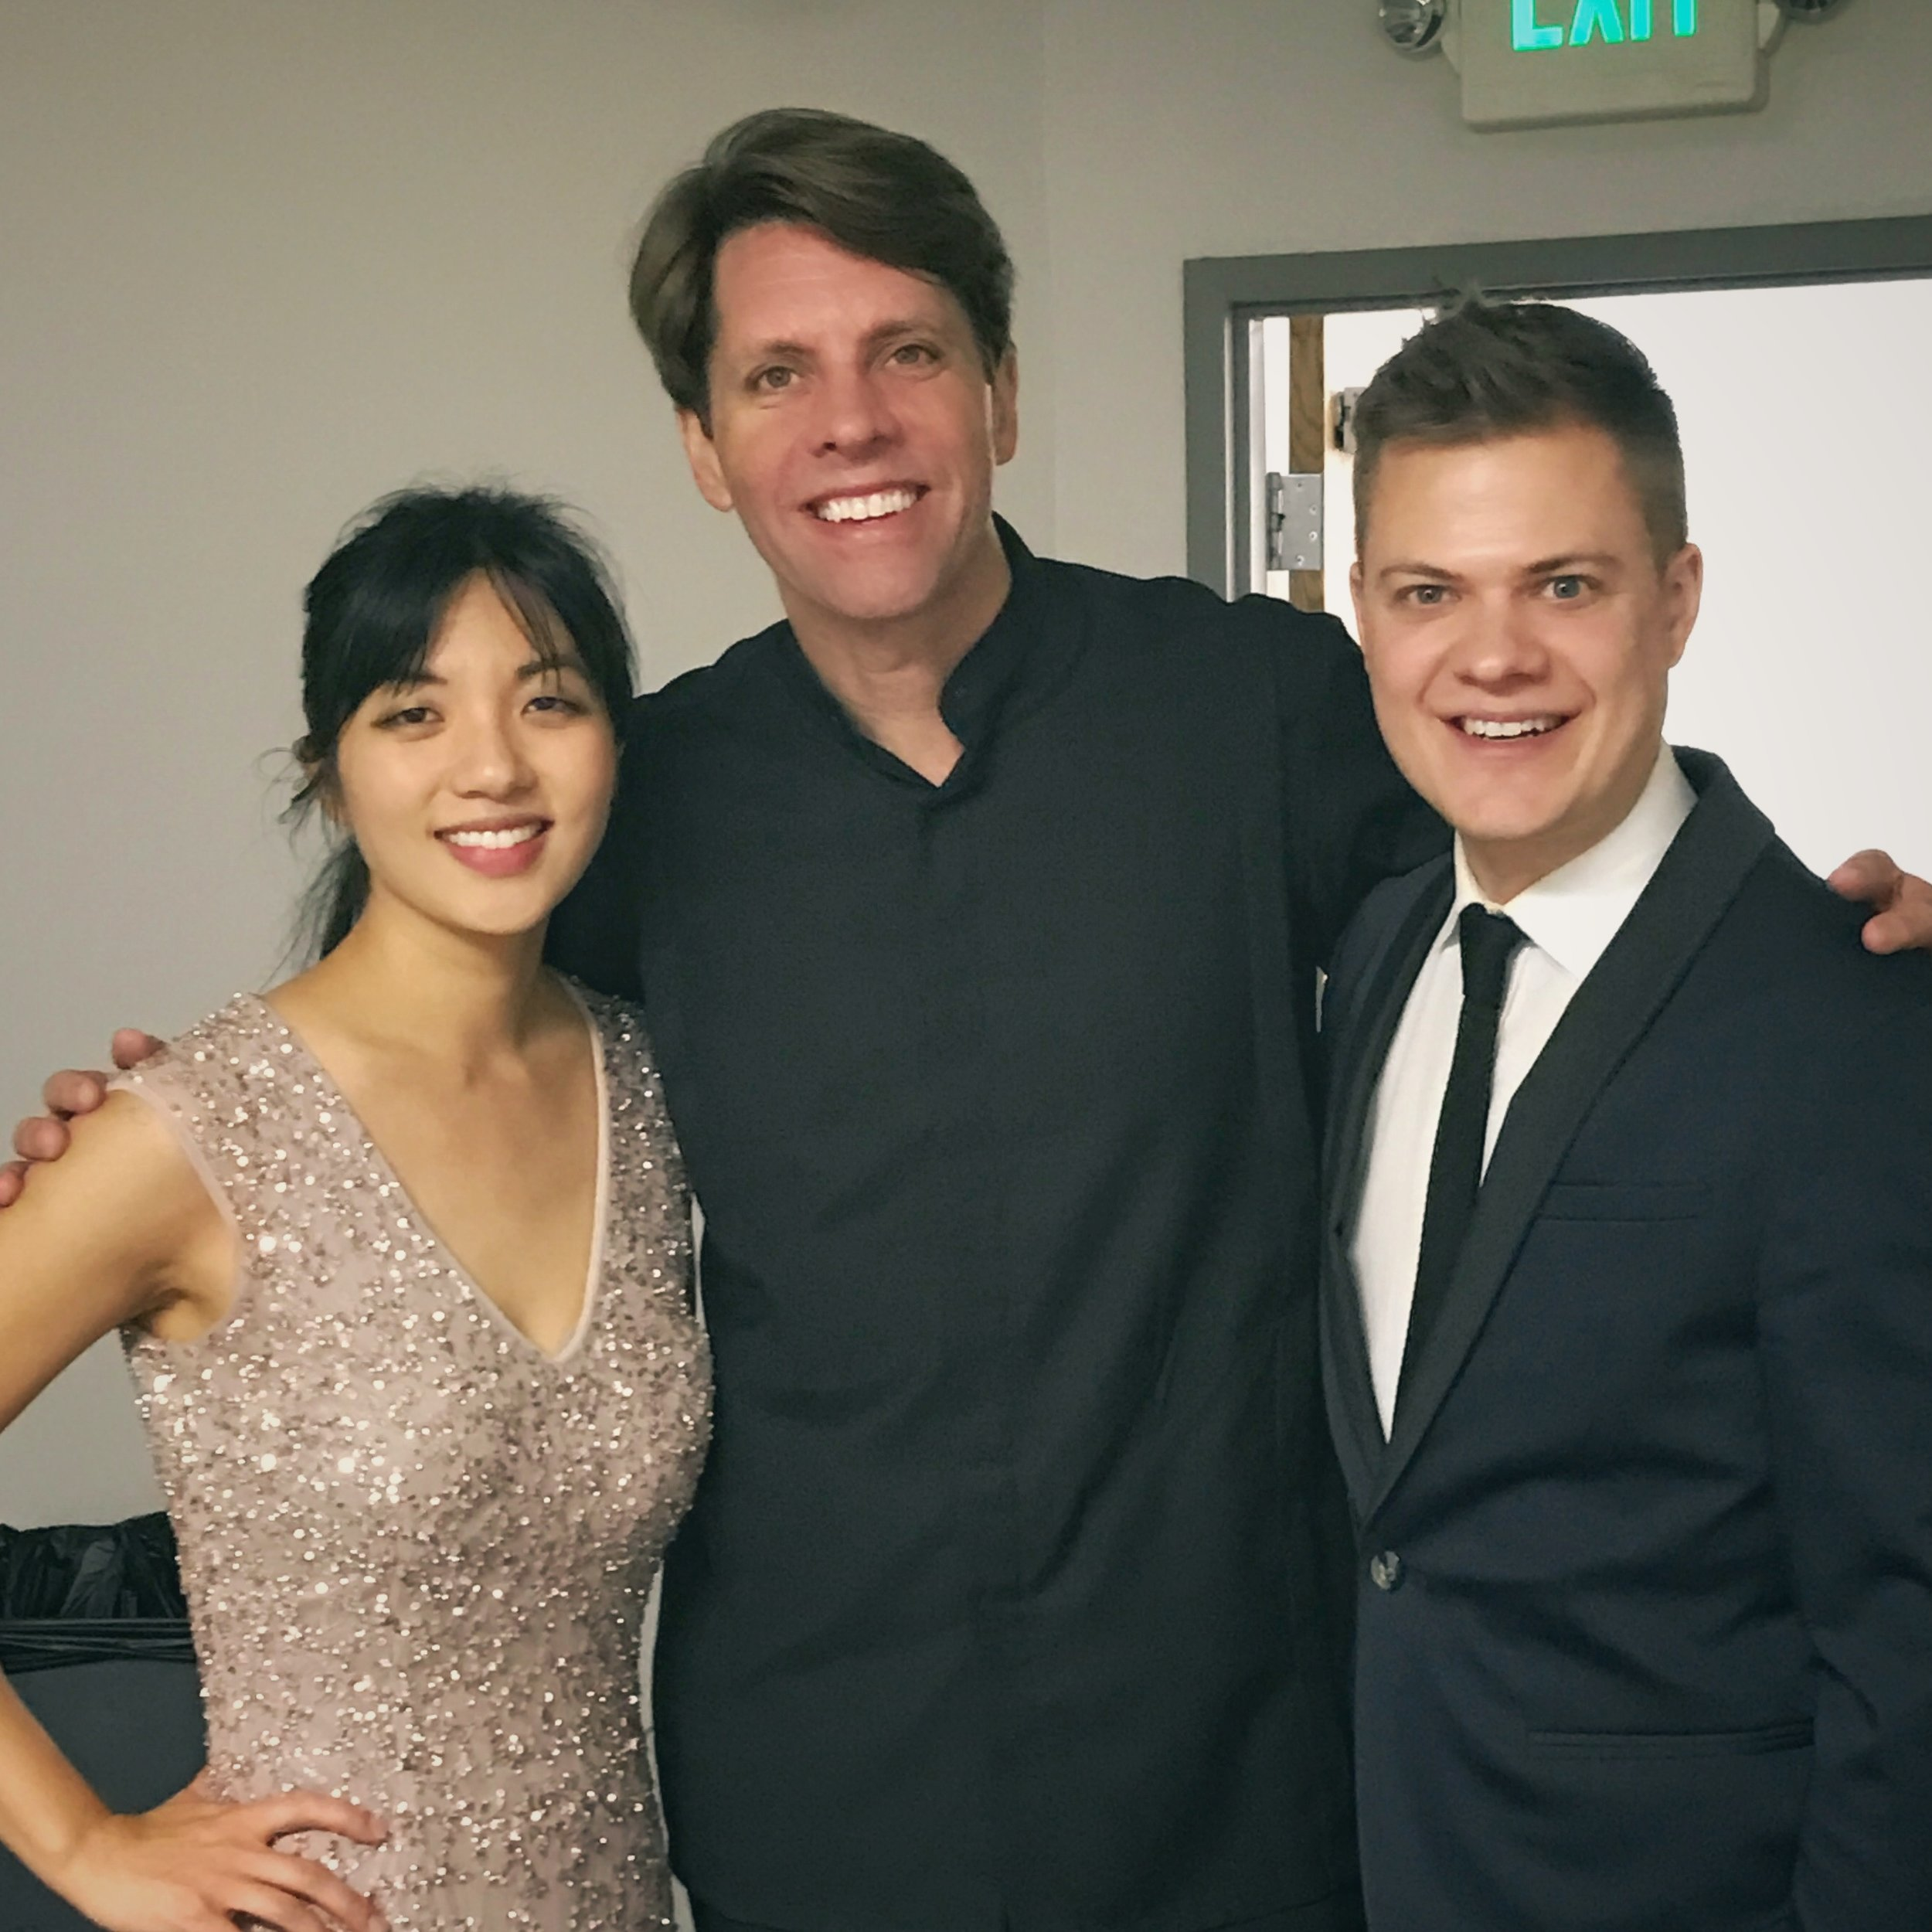 Anderson & Roe with Maestro Michael Butterman after performing two concerti with the Boulder Philharmonic